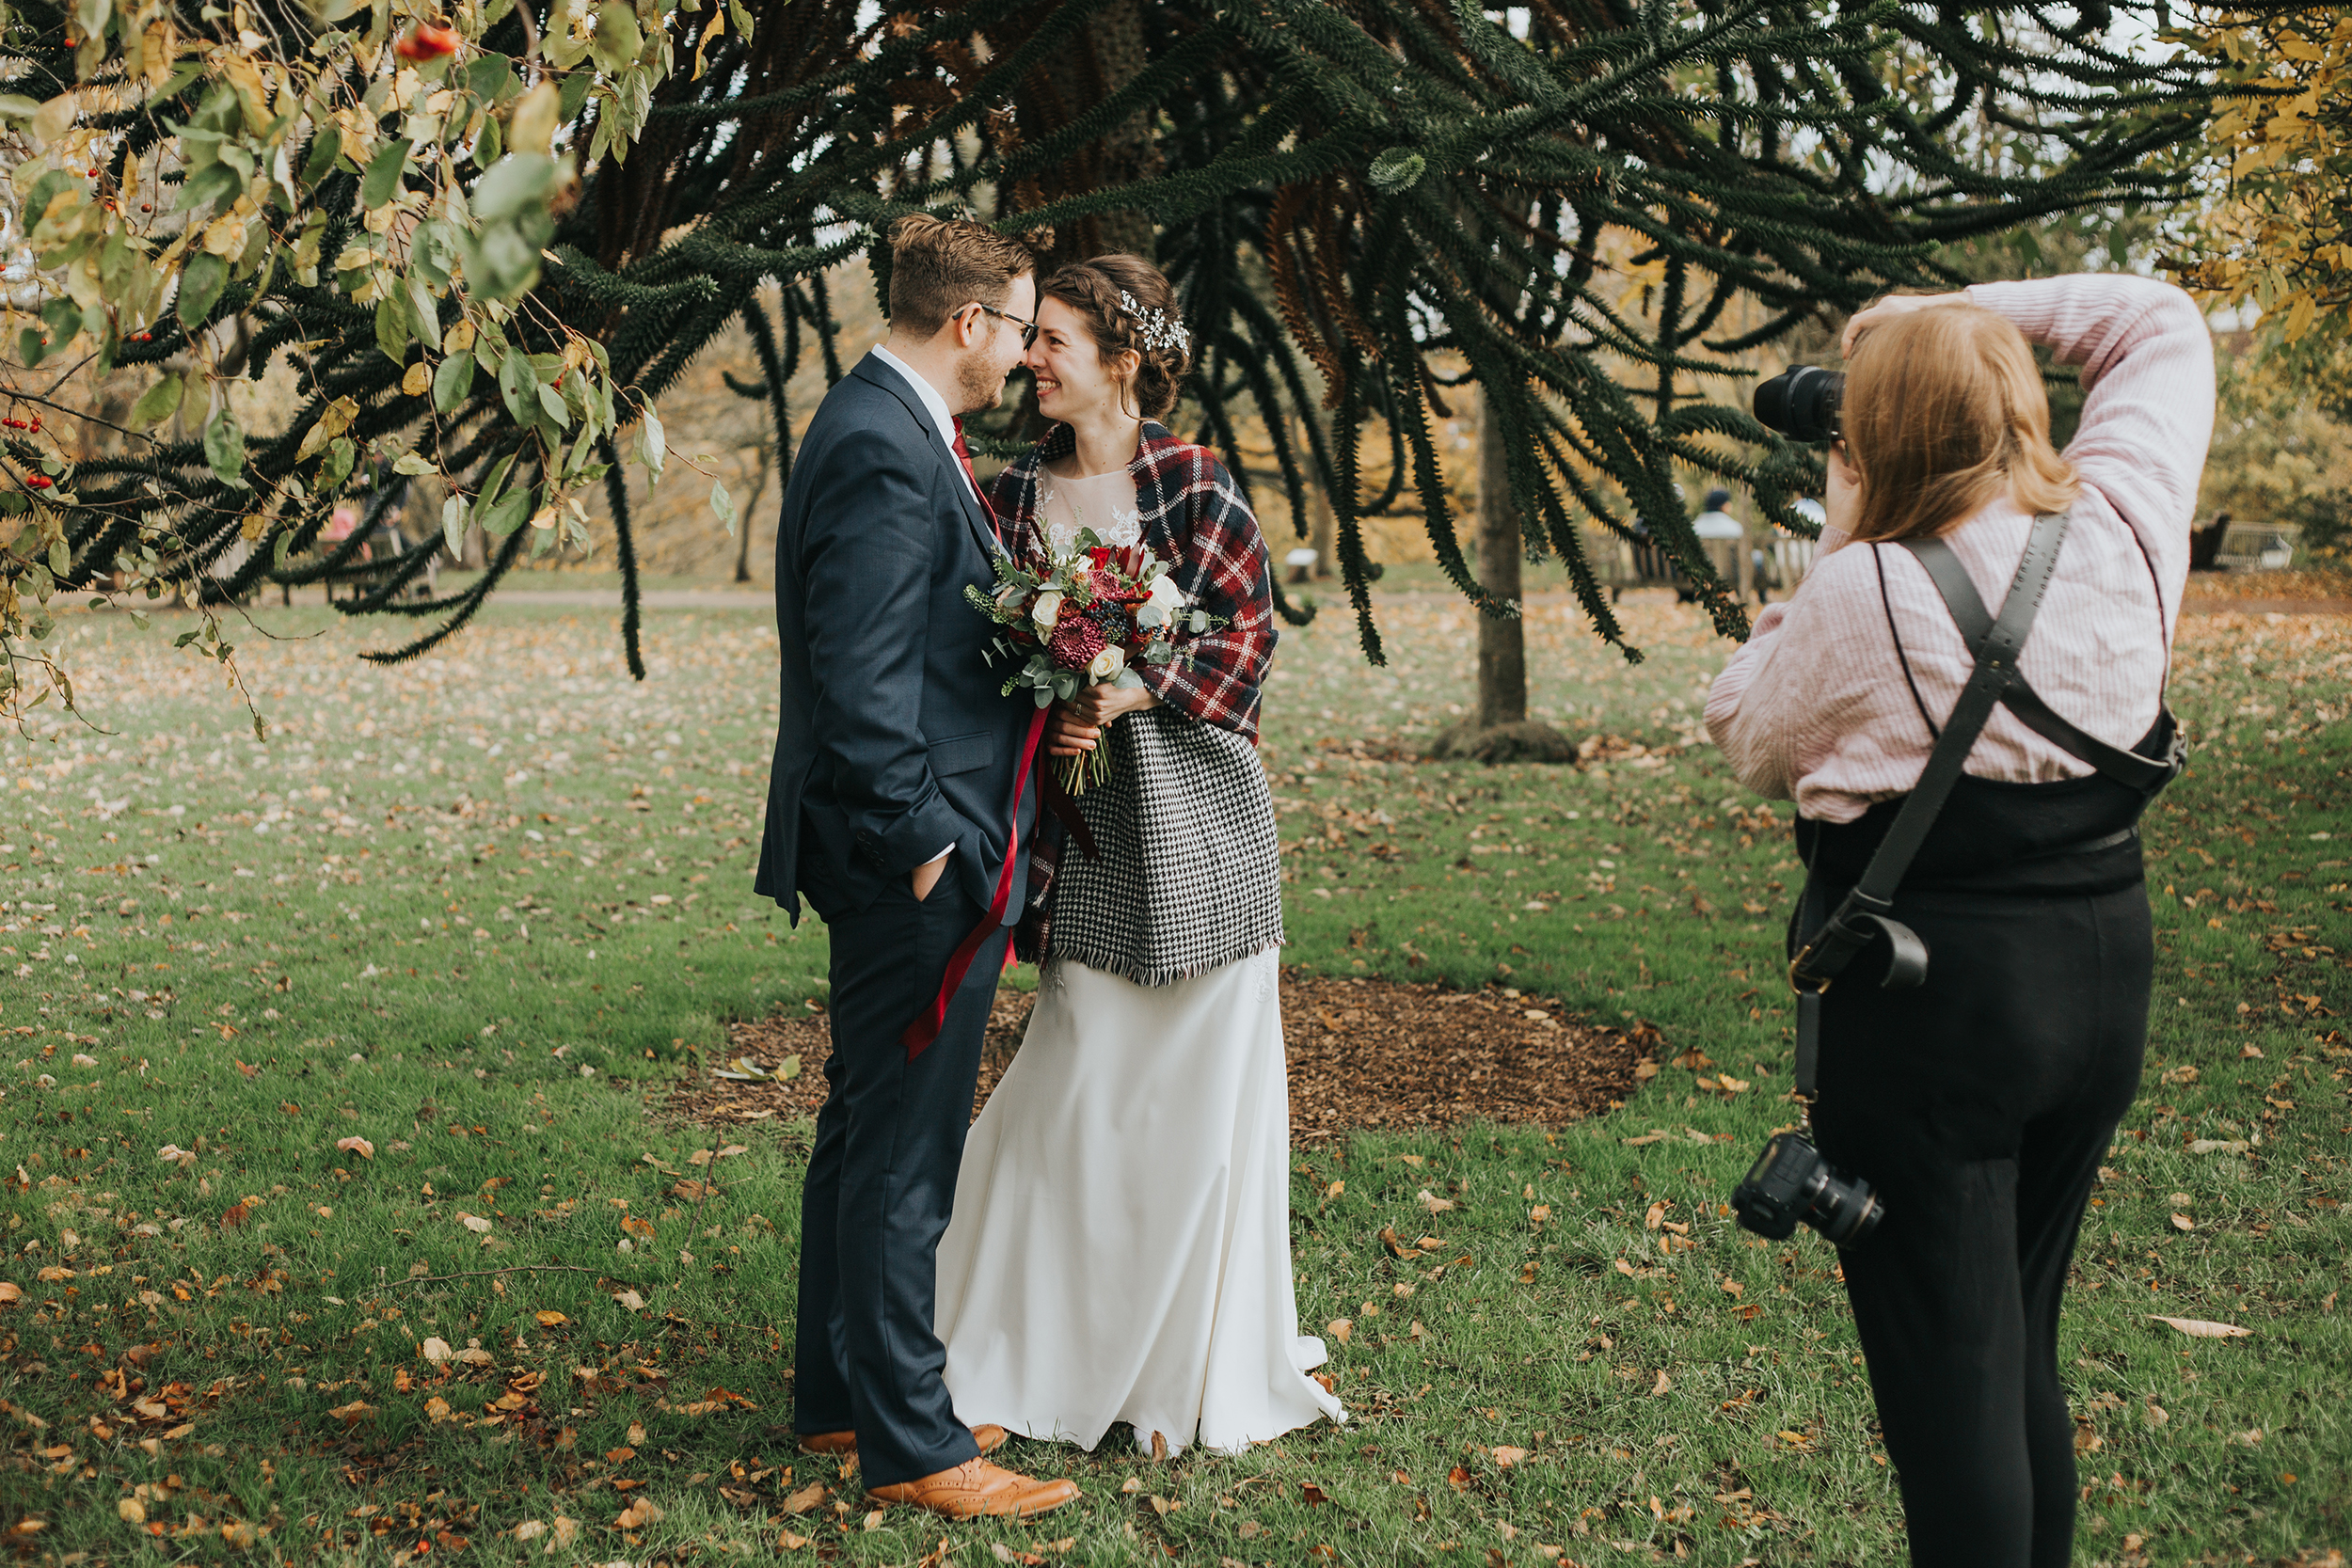 Sophie Ann Photography Northampton Wedding Photography Behind the Scenes